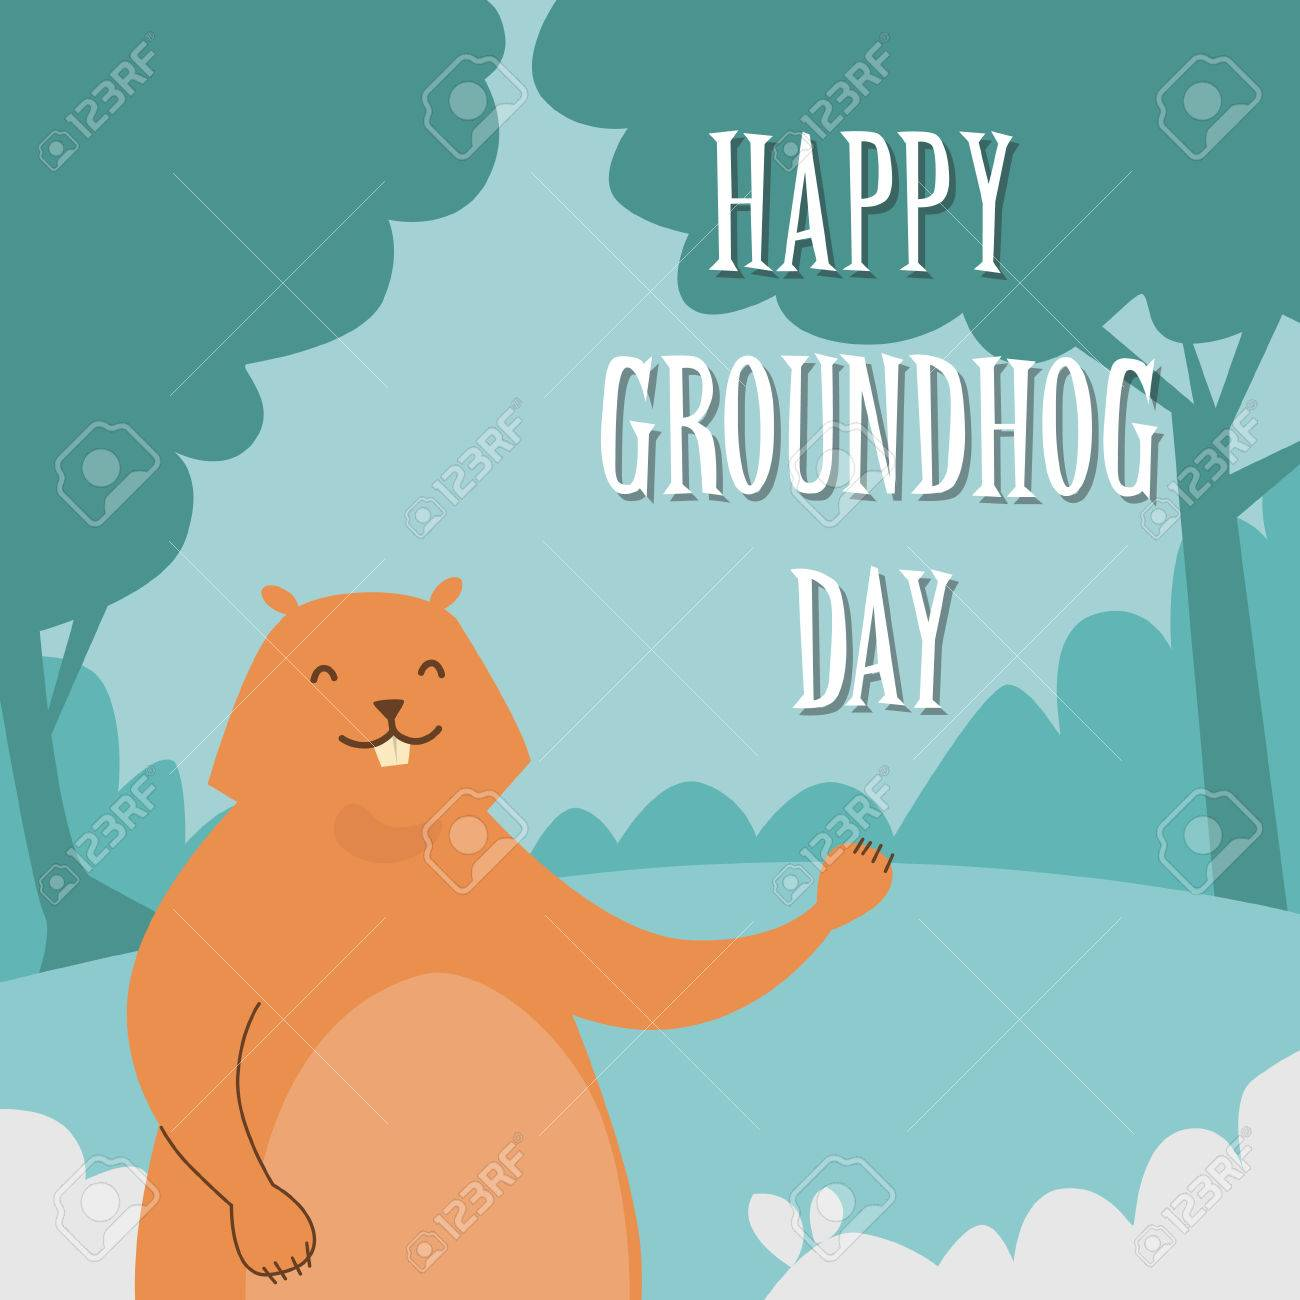 groundhog day clipart.html